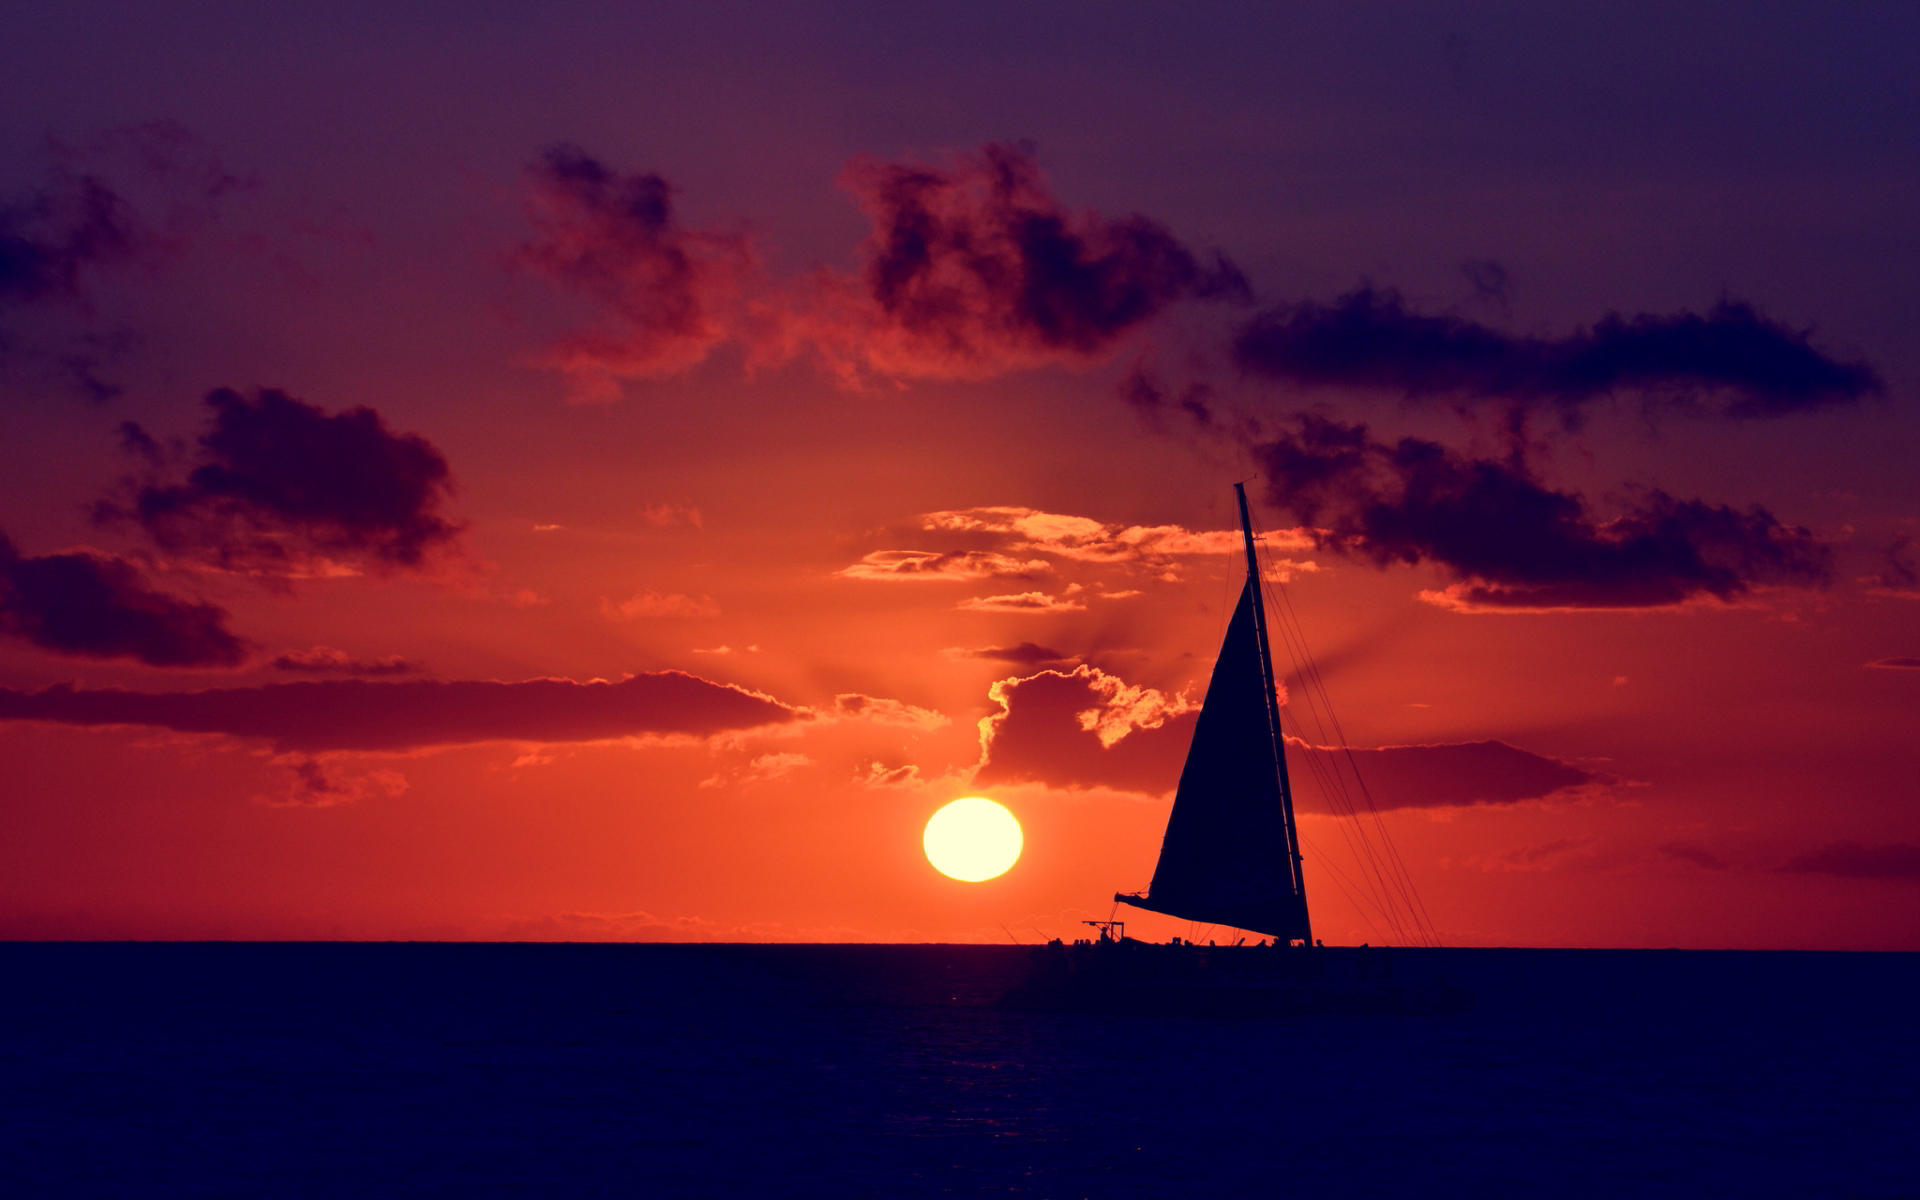 Sailing ocean sunset